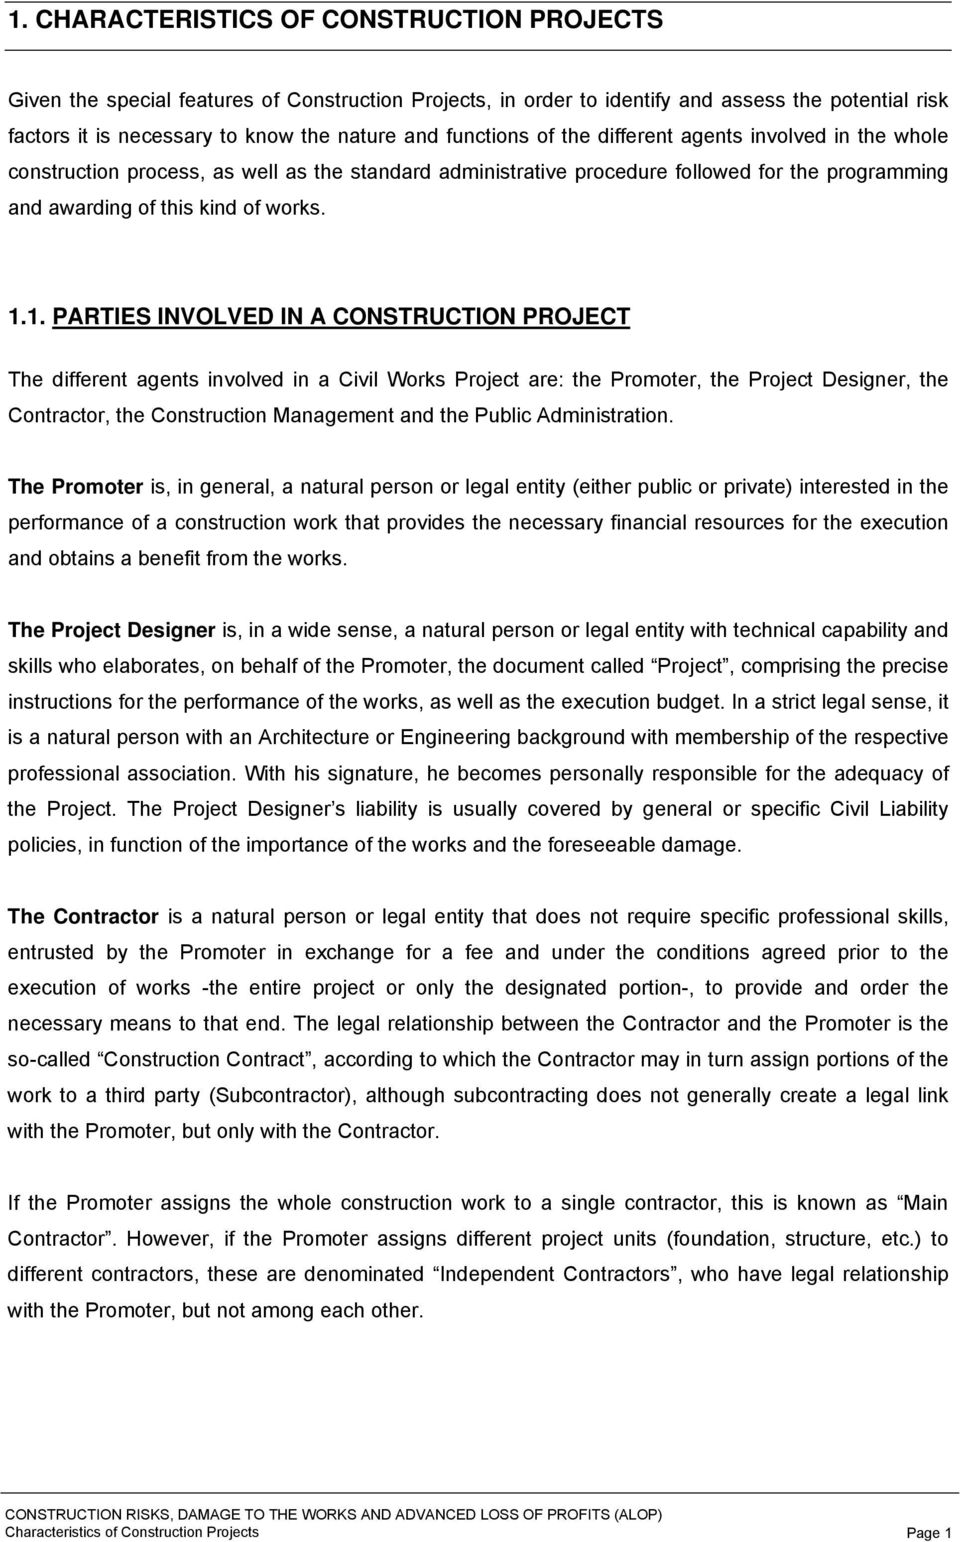 1. PARTIES INVOLVED IN A CONSTRUCTION PROJECT The different agents involved in a Civil Works Project are: the Promoter, the Project Designer, the Contractor, the Construction Management and the